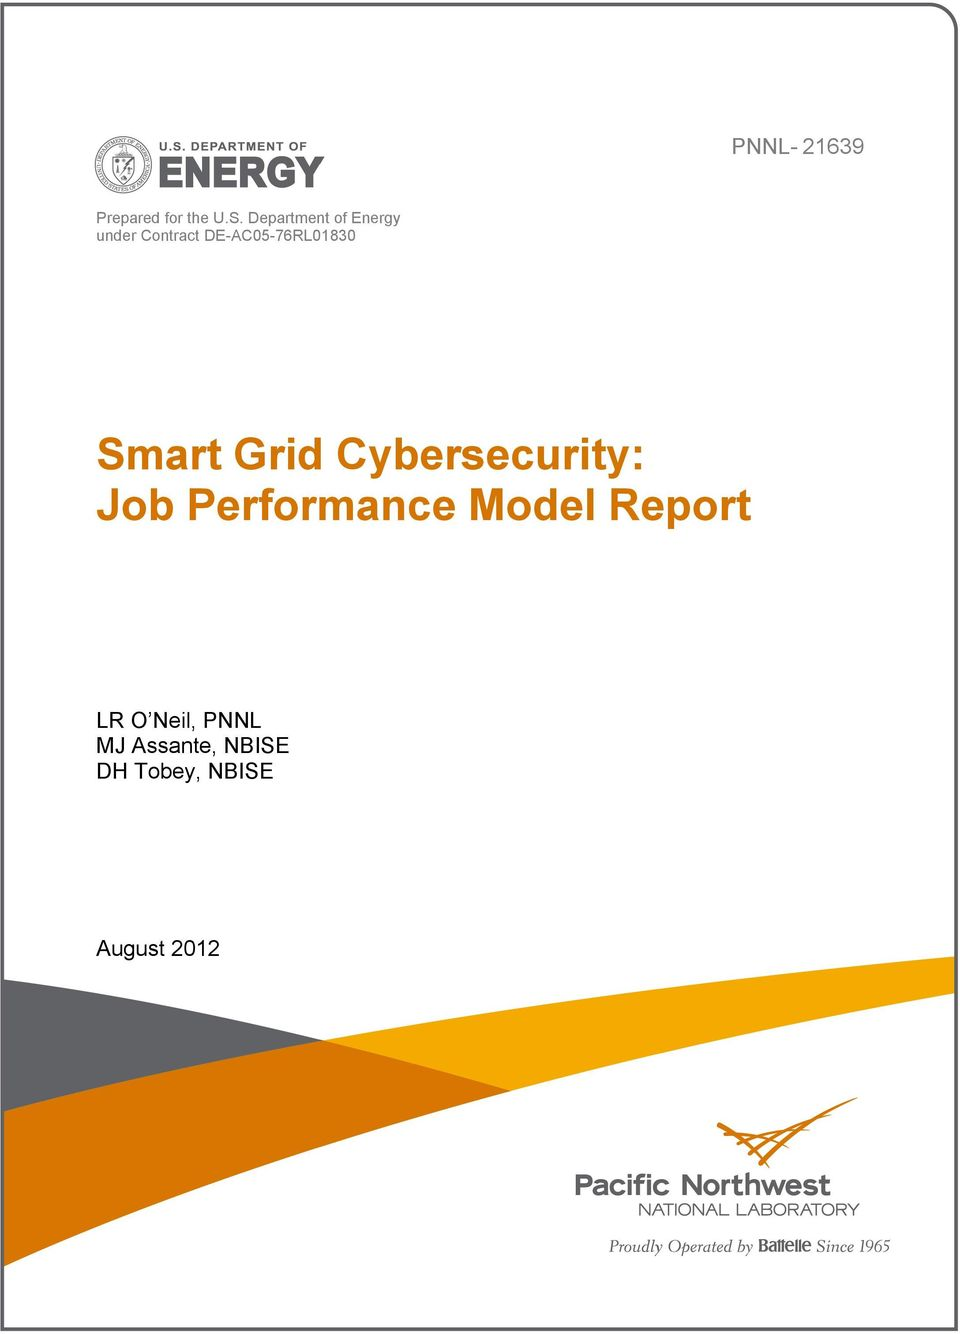 DE-AC05-76RL01830 Smart Grid Cybersecurity: Job